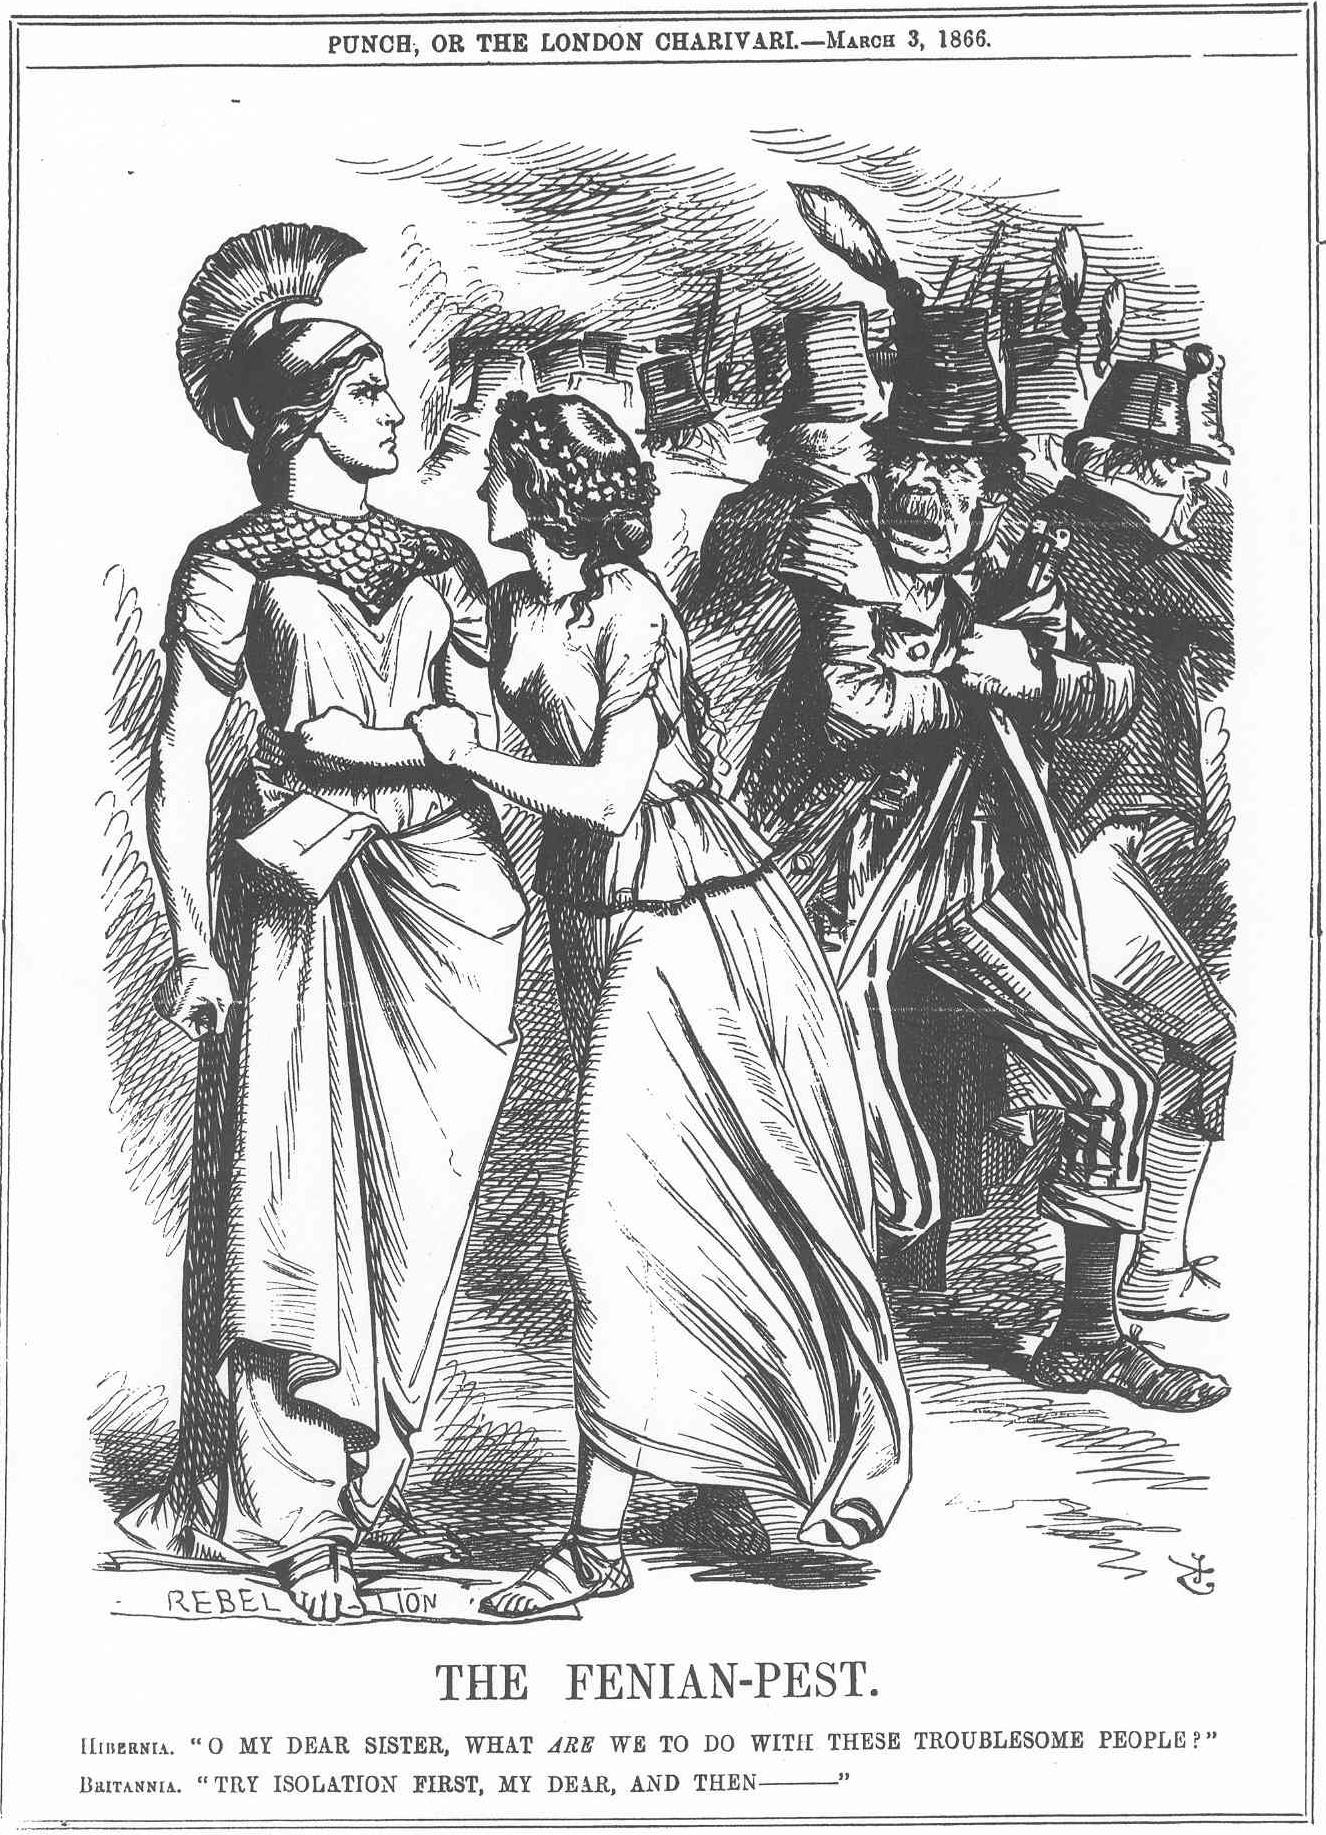 Figure 1. Punch.—March 3, 1866. The Fenian-Pest.